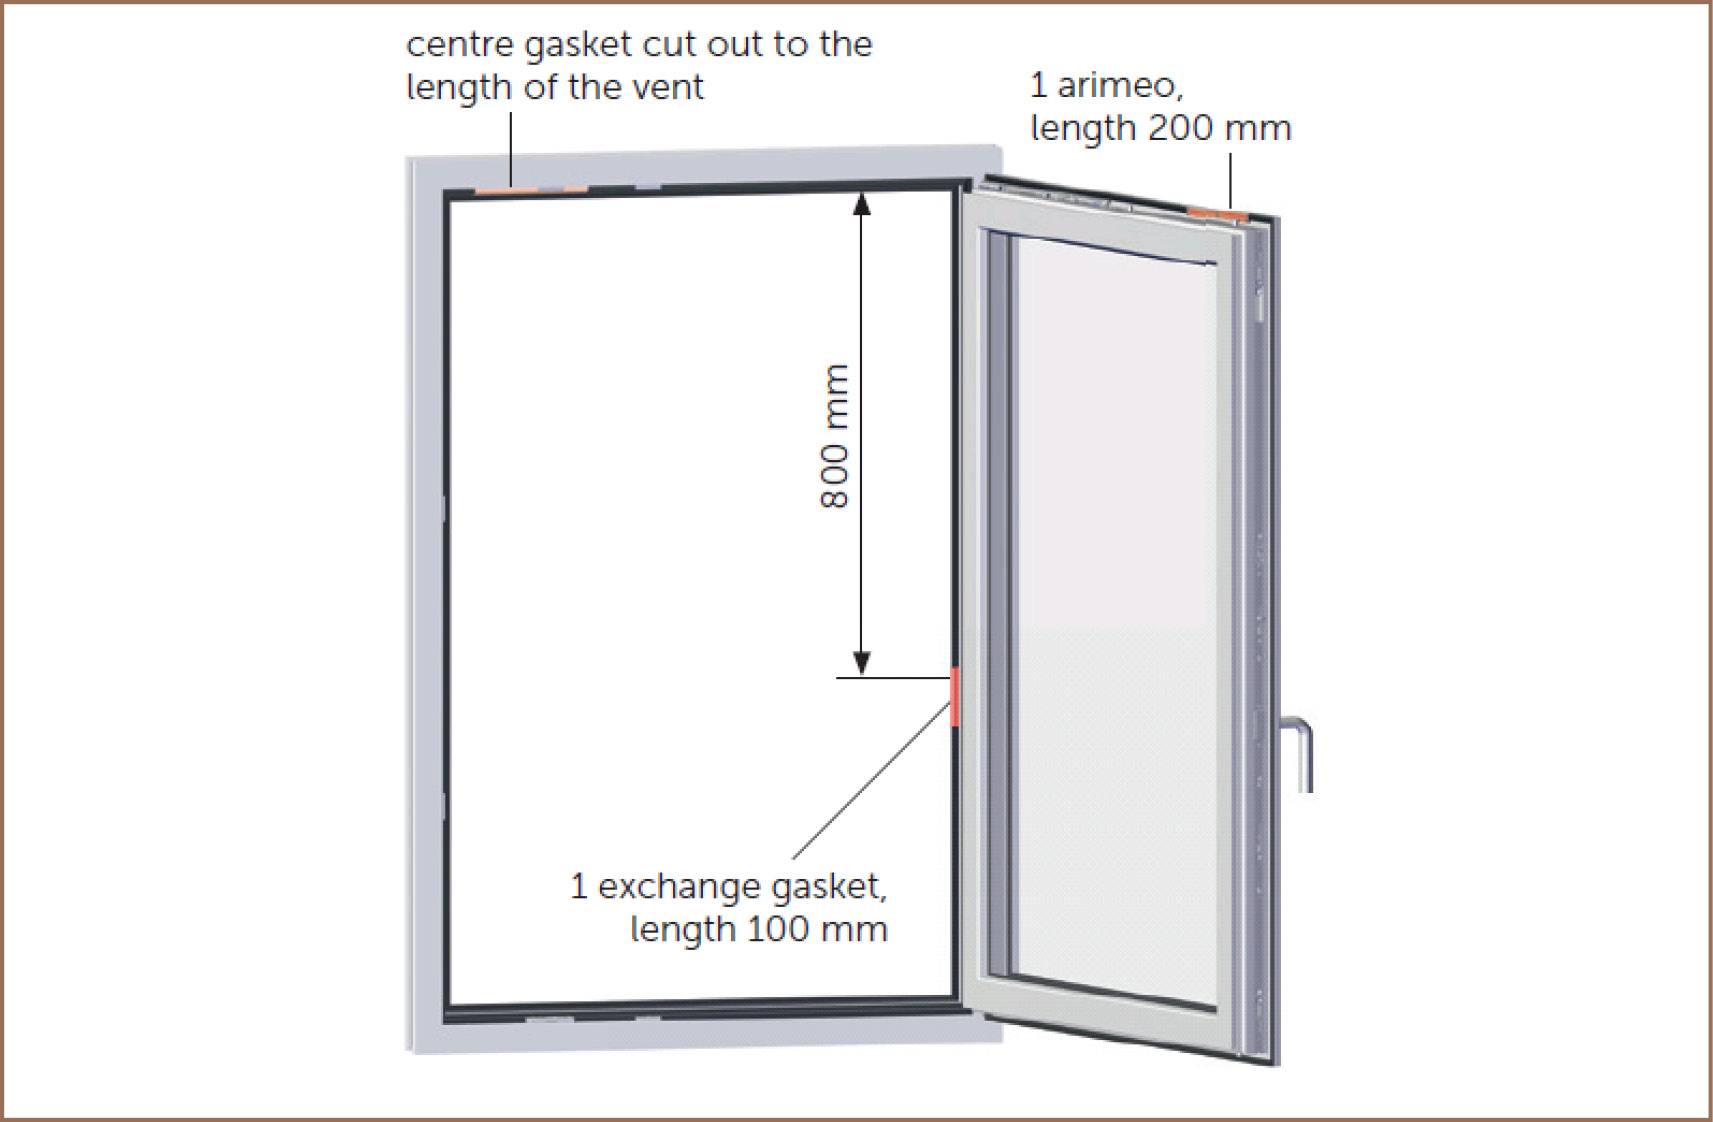 arimeo classic S installation variant single acoustic centre gasket system